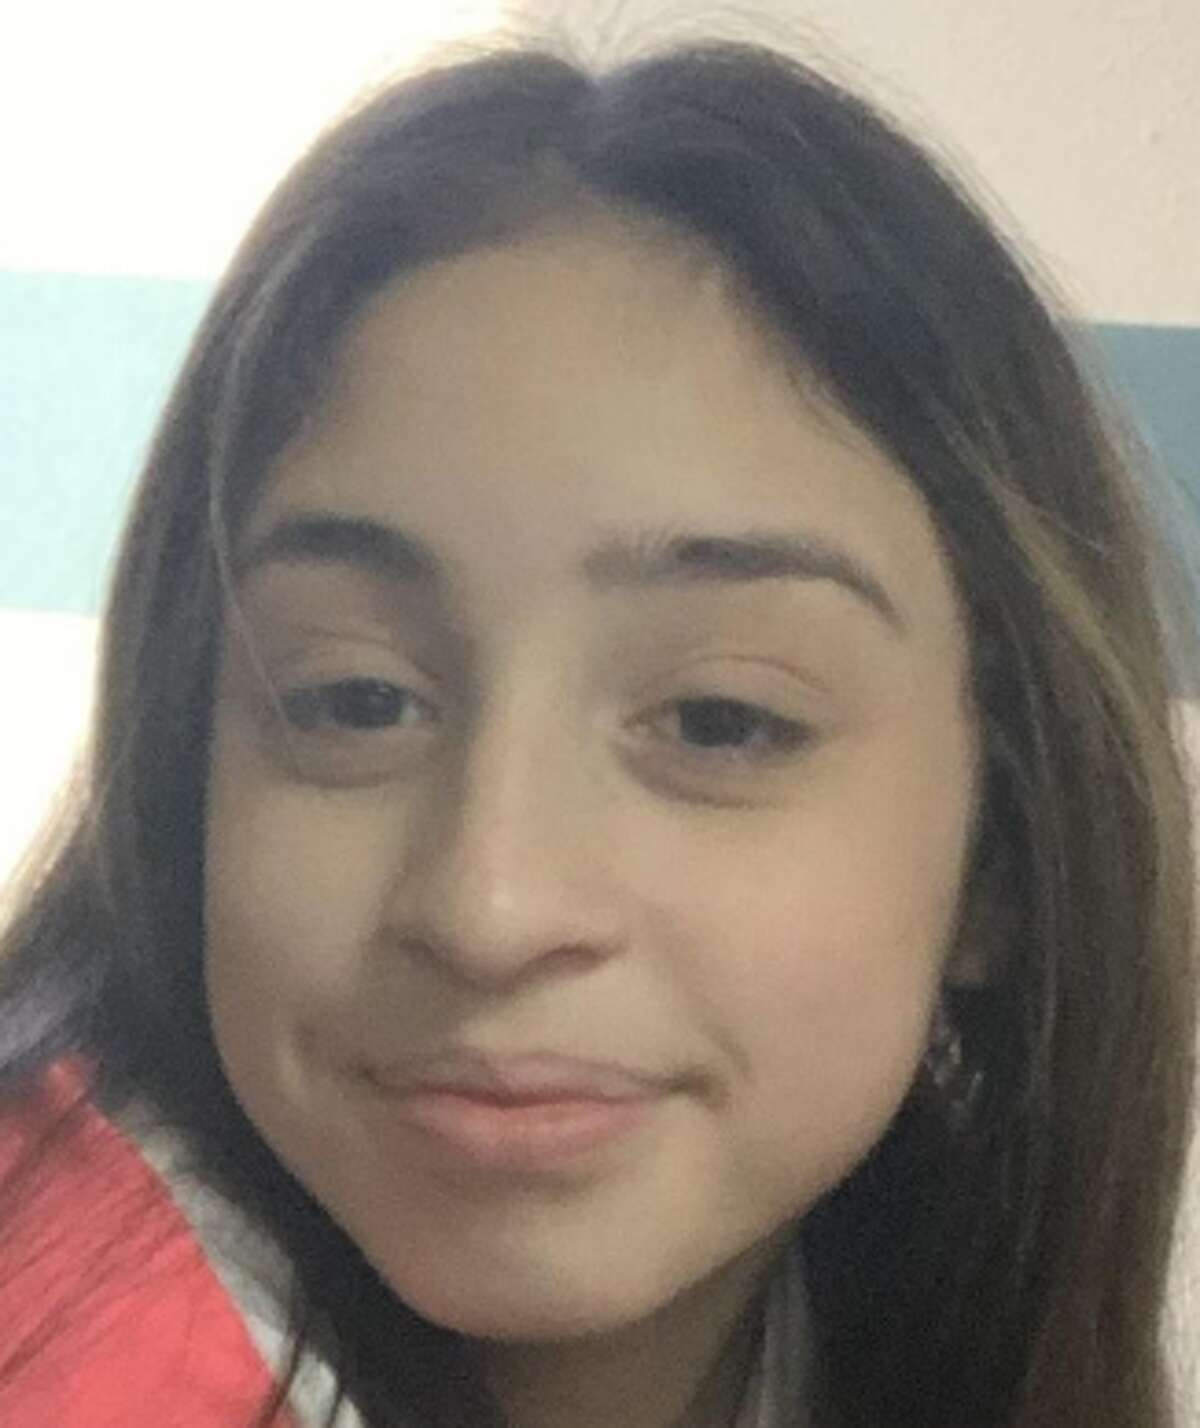 The San Antonio police have issued an Amber Alert for missing 12-year-old Amisty Monrreal last seen on the West Side.